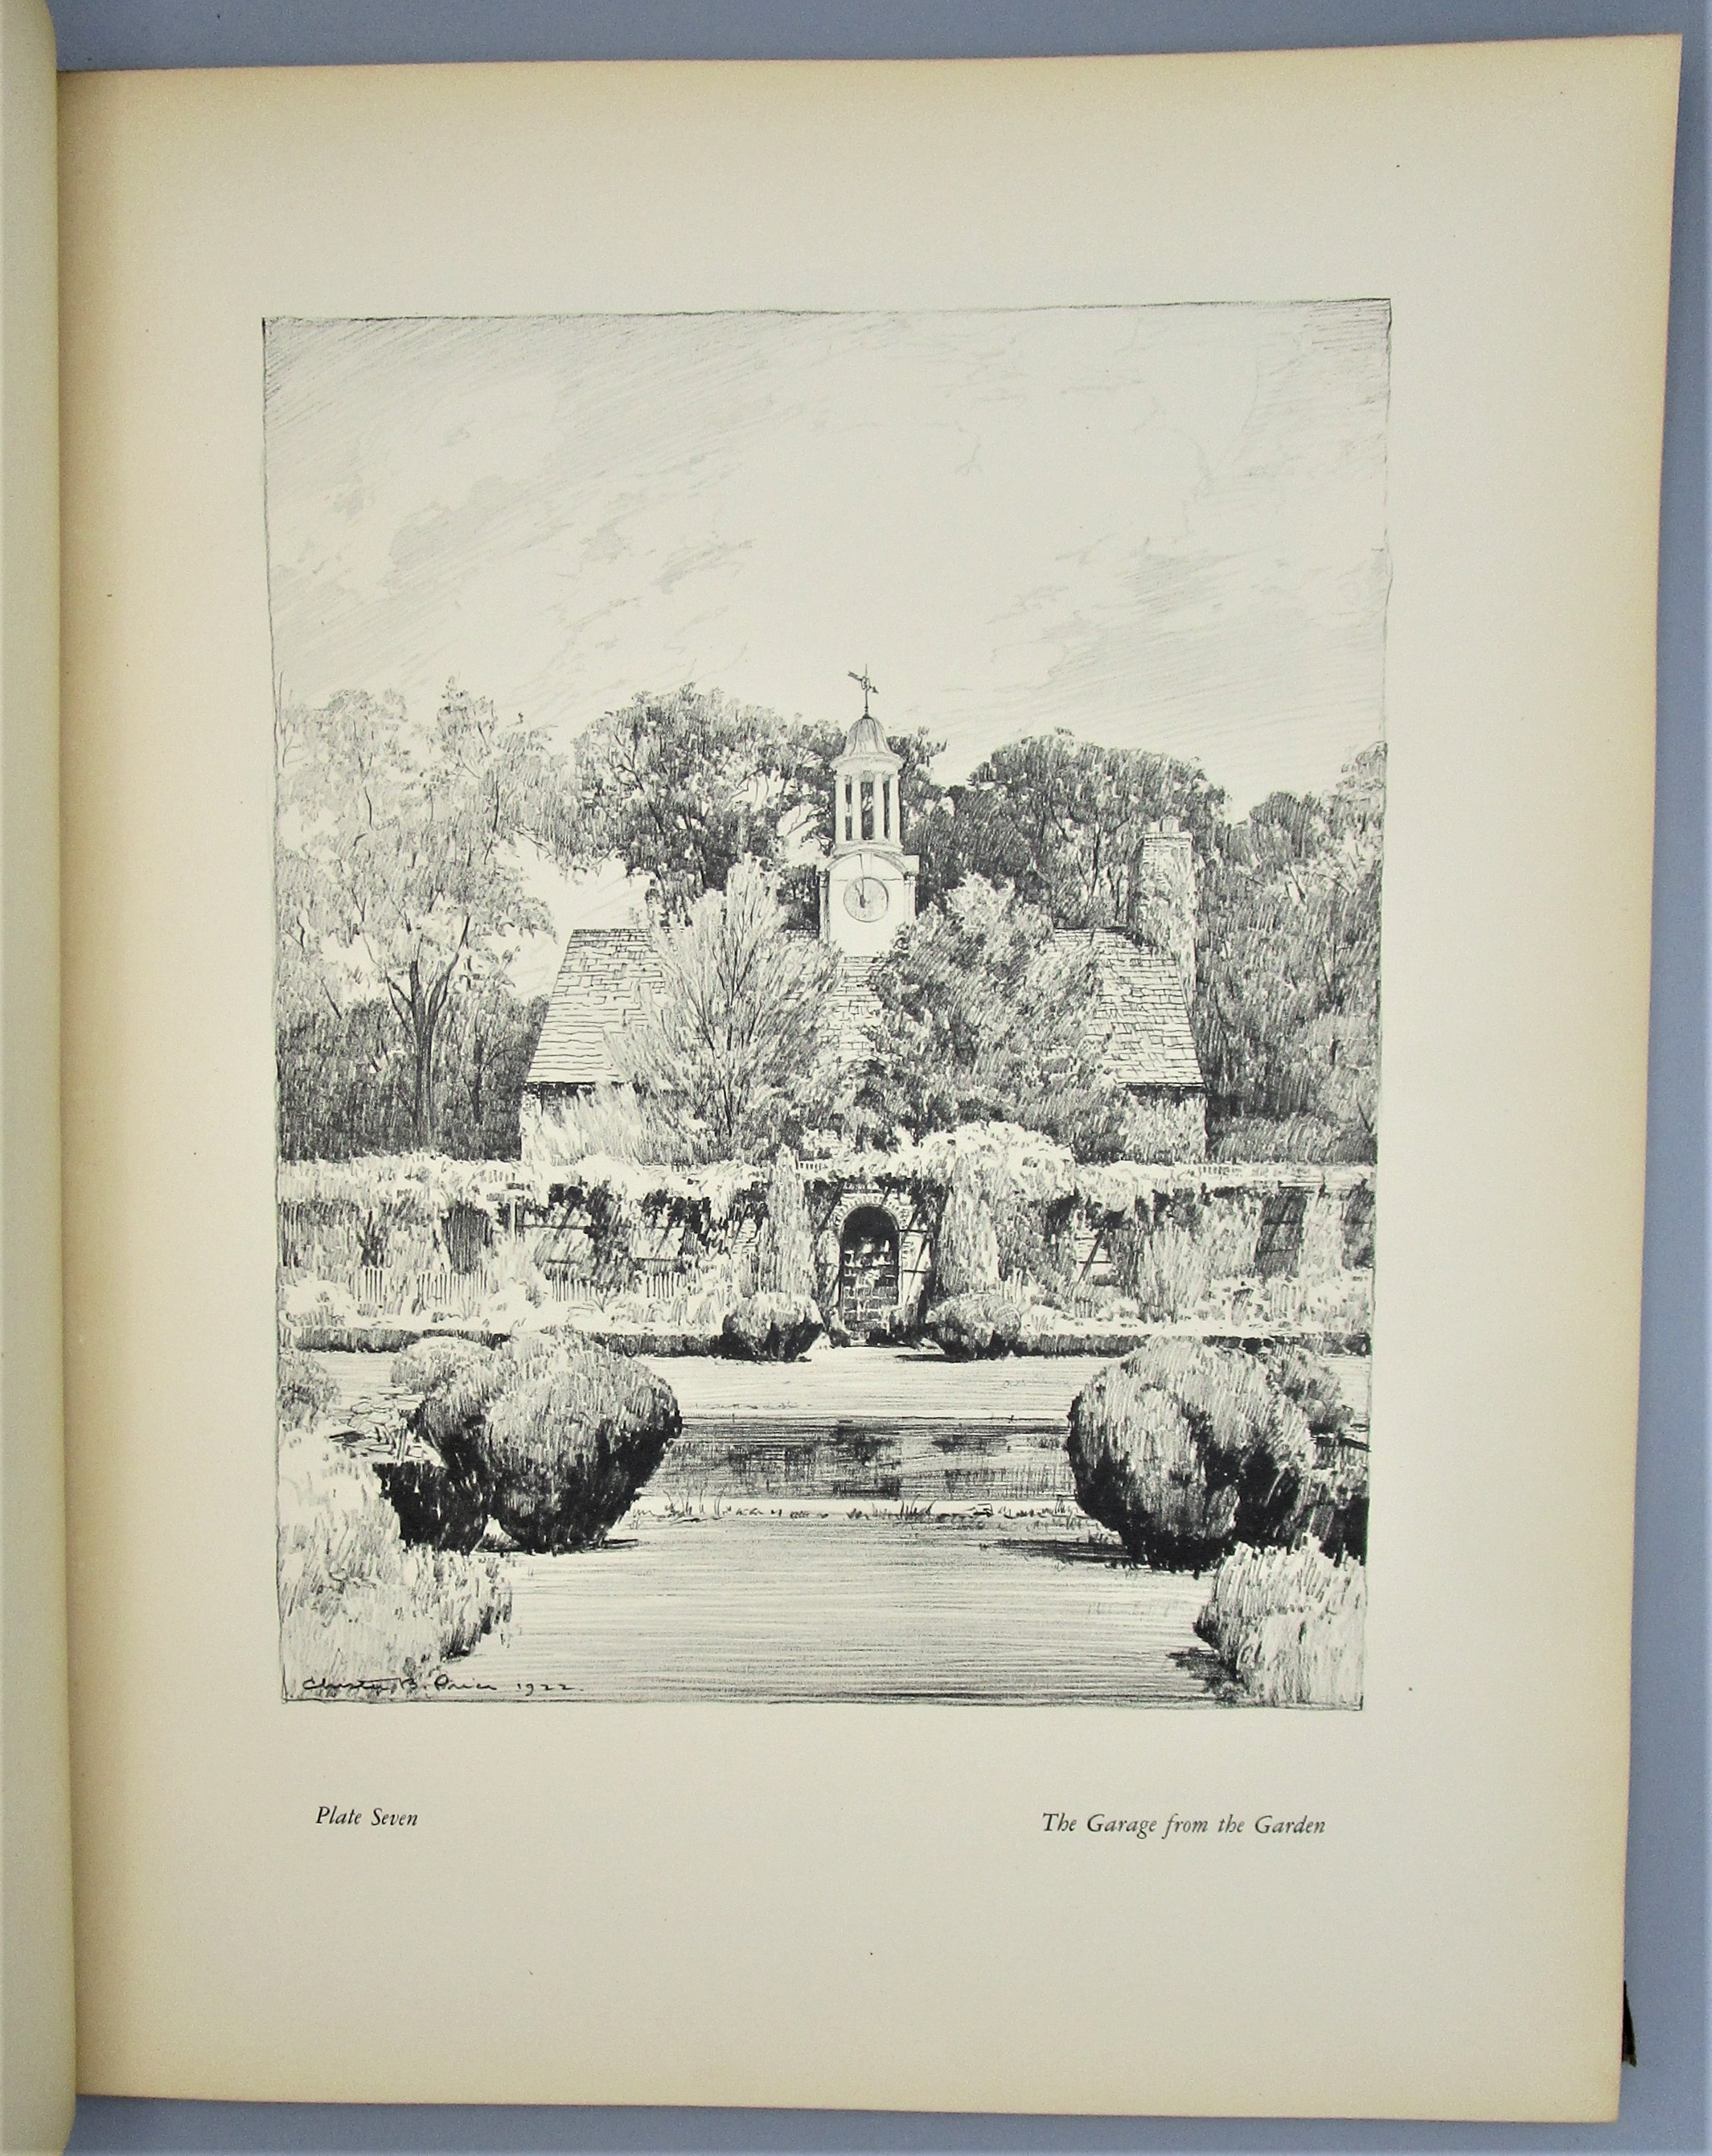 TEN COUNTRY HOUSES BY DELANO & ALDRICH, by Chester B. Price - 1924